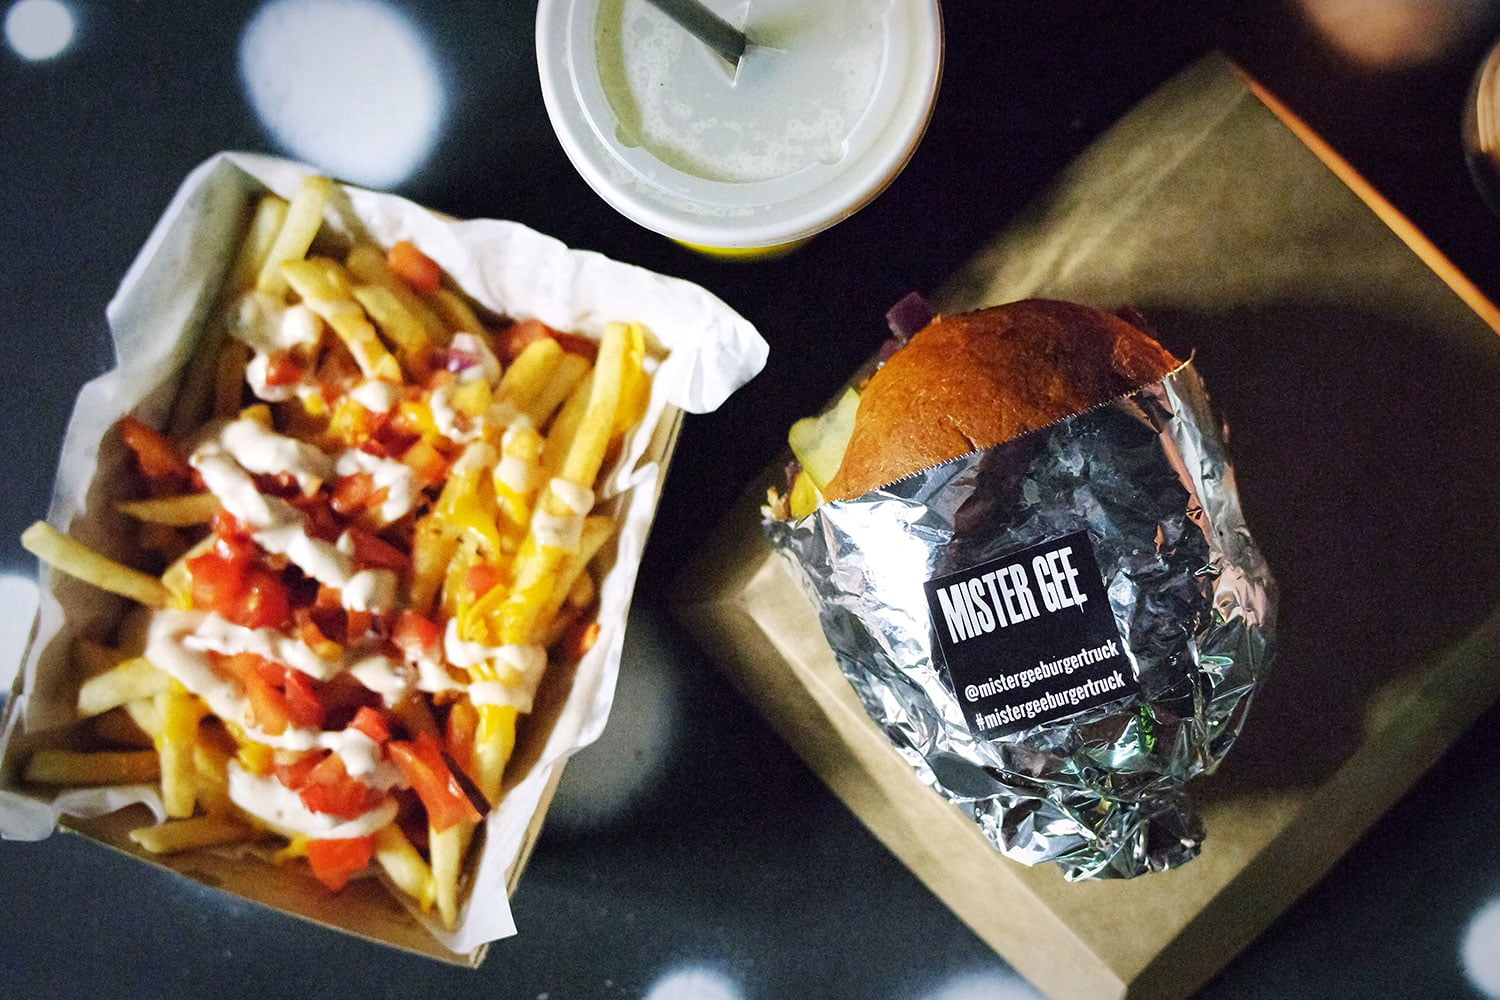 Trio of Cheese boogie burger, Dirty Fries and Baklava Milkshake from Mister Gee Burger Truck